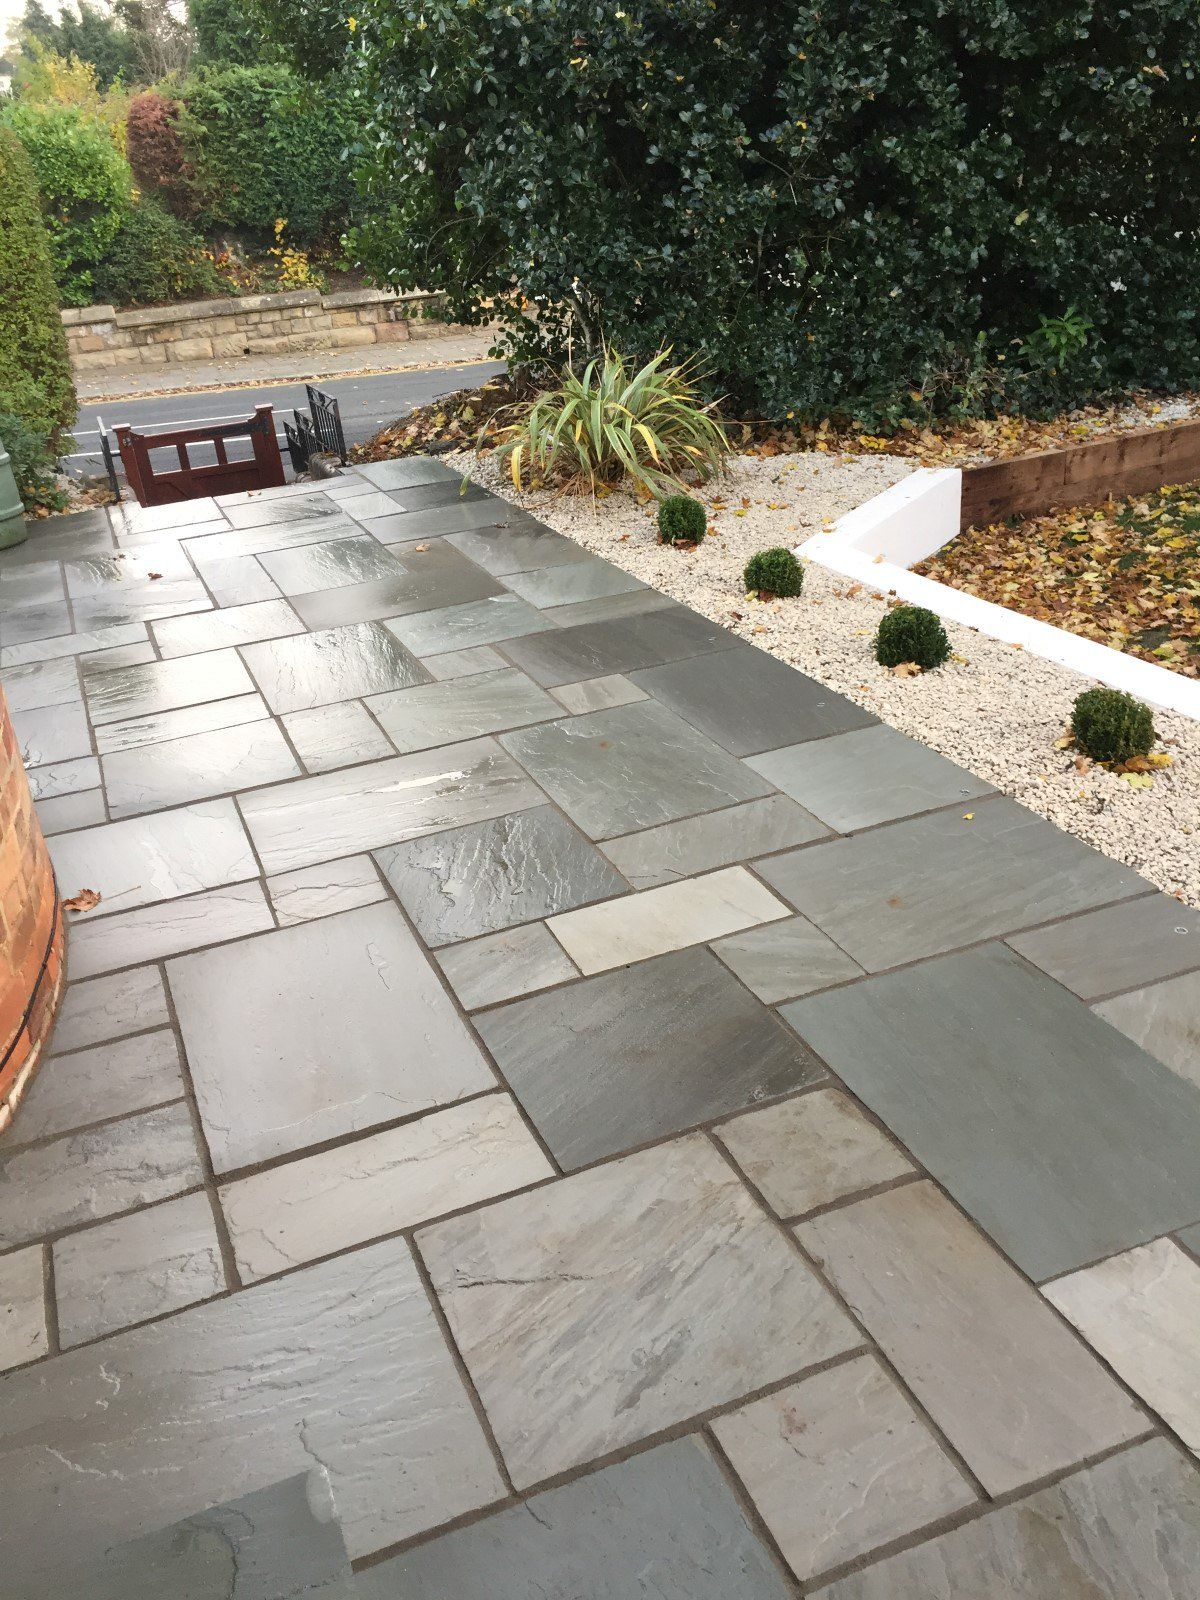 Bradstone Natural Sandstone Paver Silver Grey 900x600 In 2020 Sandstone Paving Patio Garden Design Outdoor Paving